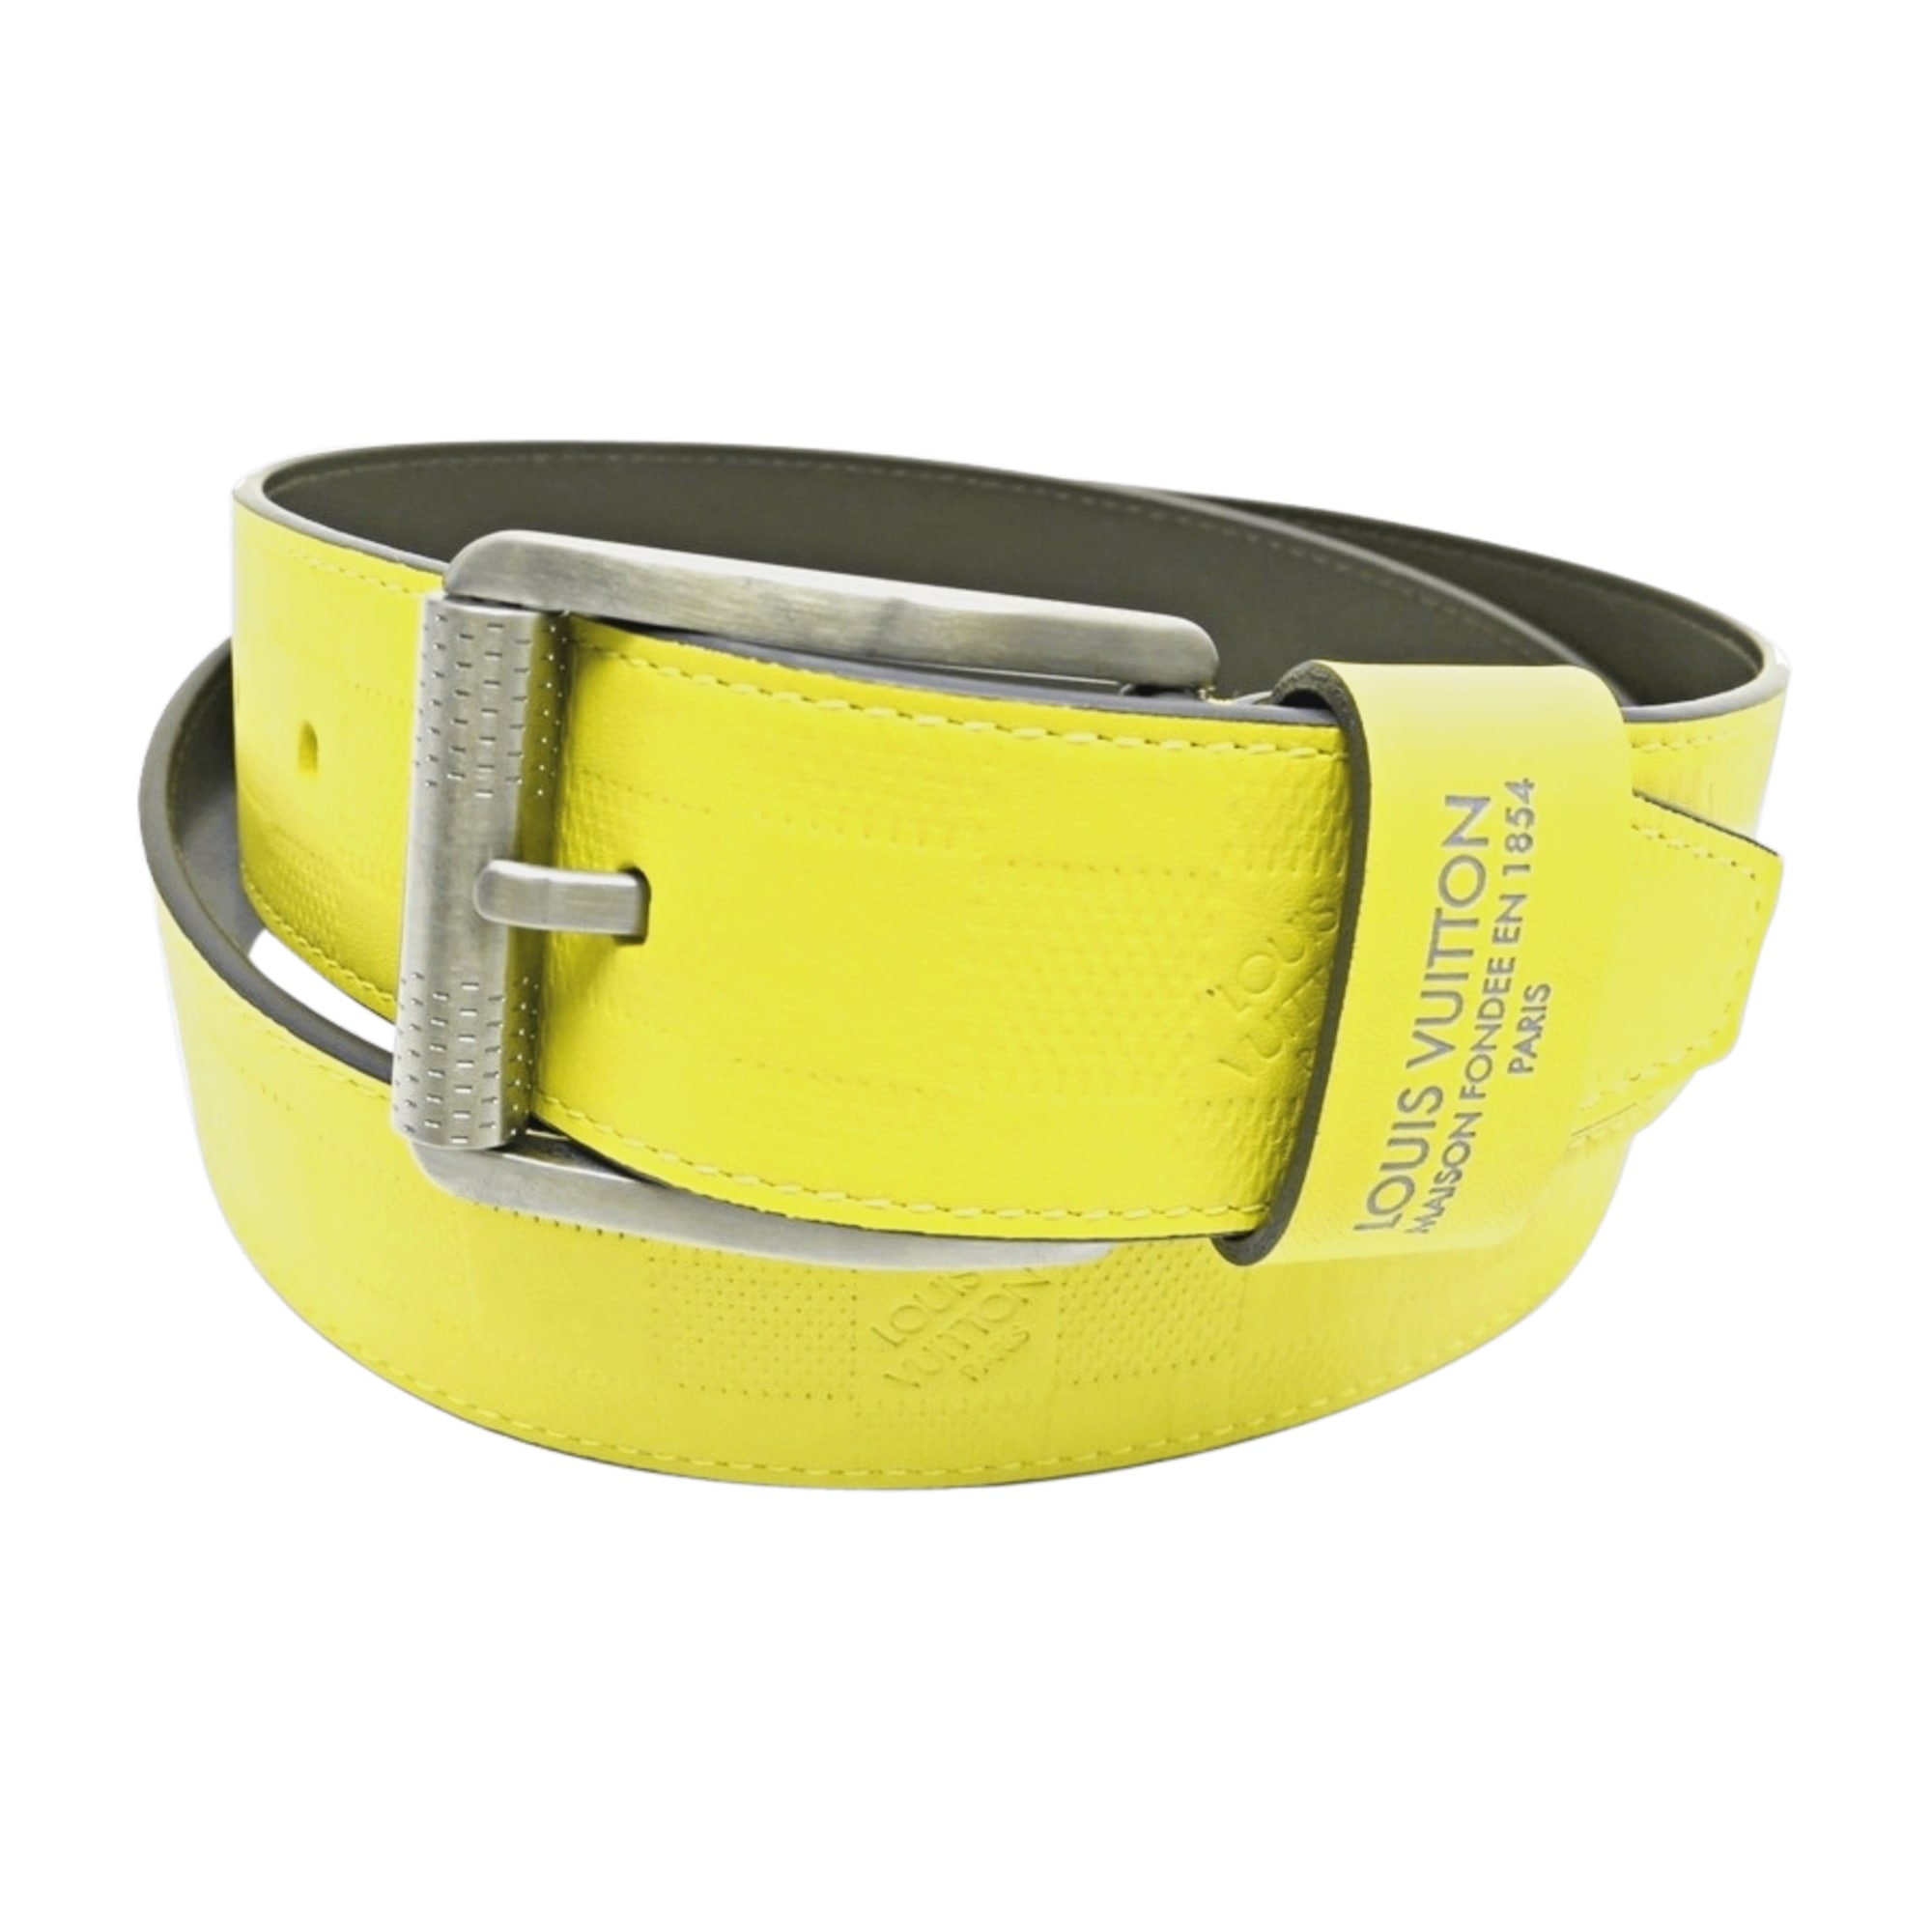 Ceinture LOUIS VUITTON 95 jaune vendu par Encherexpert - paris16 ... 88b6fb60fcc